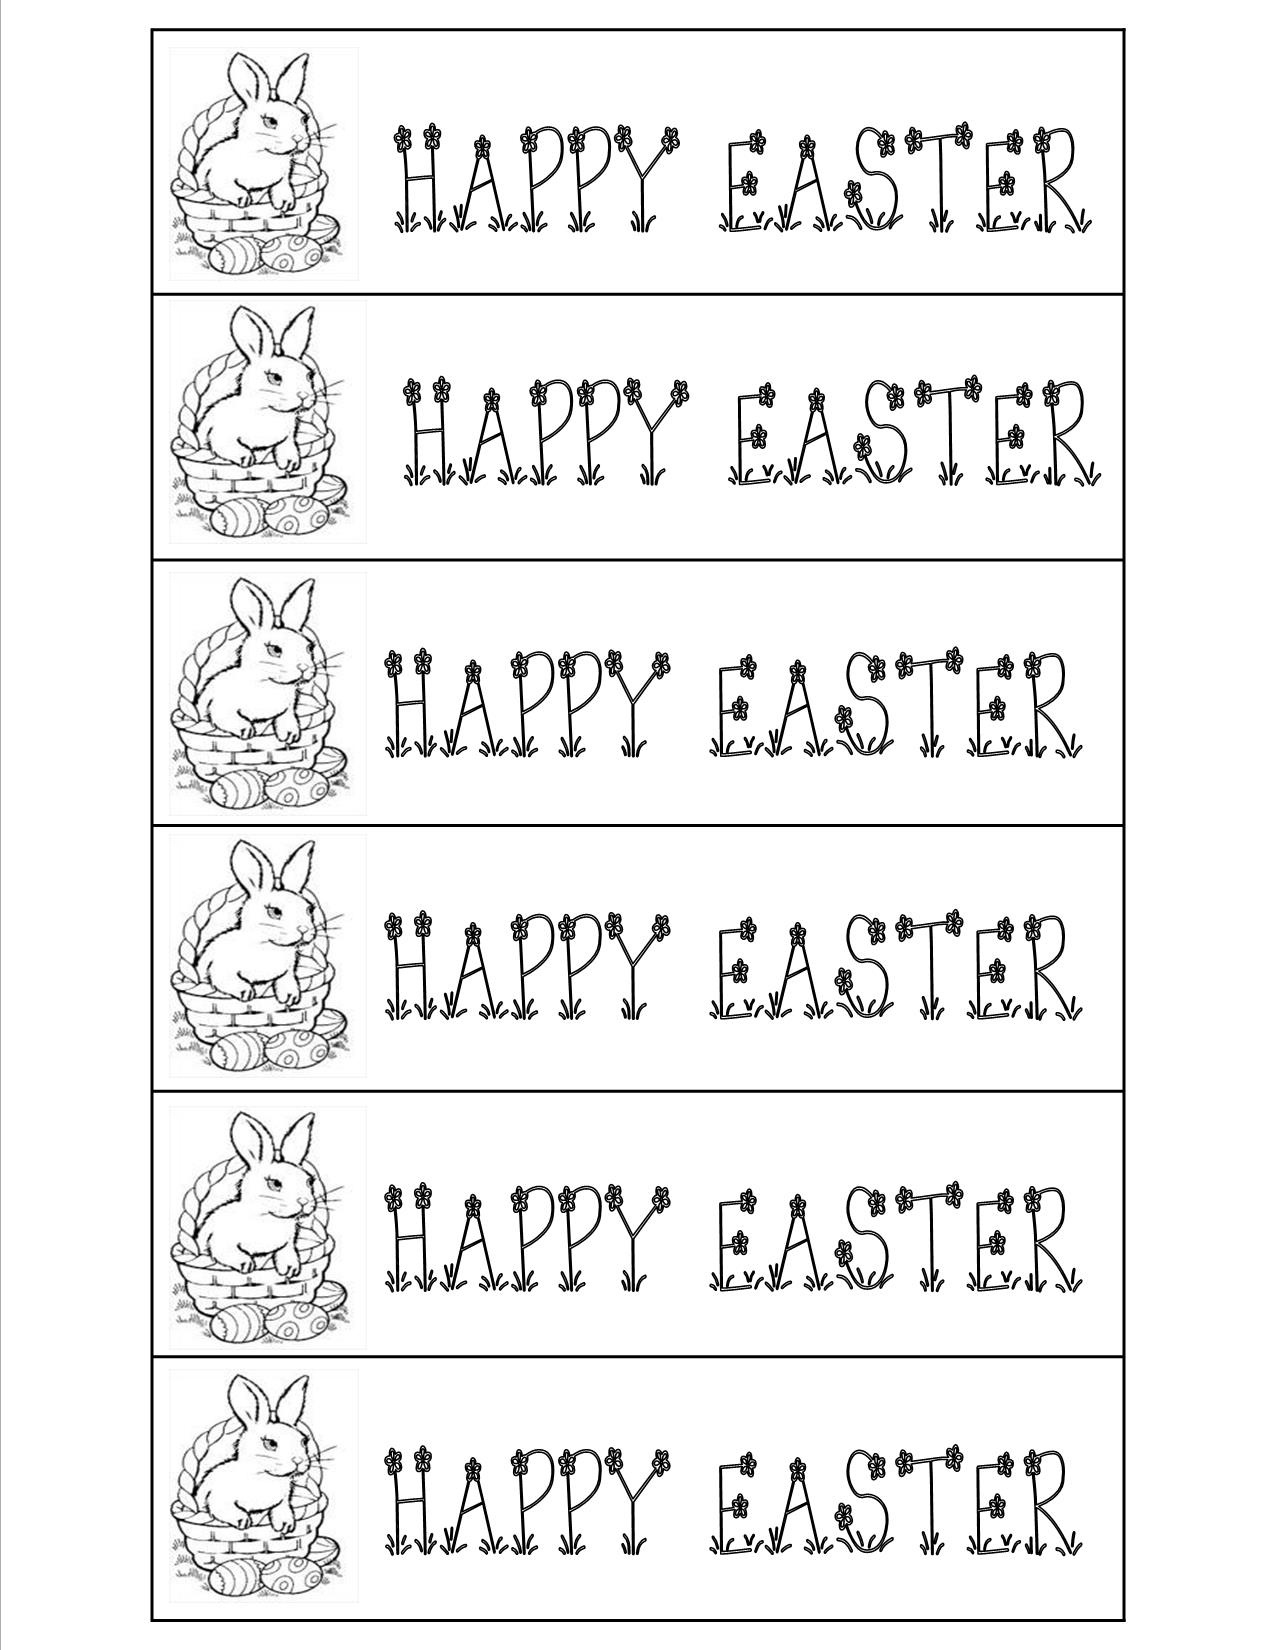 Free Printable Easter Bookmarks – Happy Easter & Thanksgiving 2018 - Free Printable Religious Easter Bookmarks